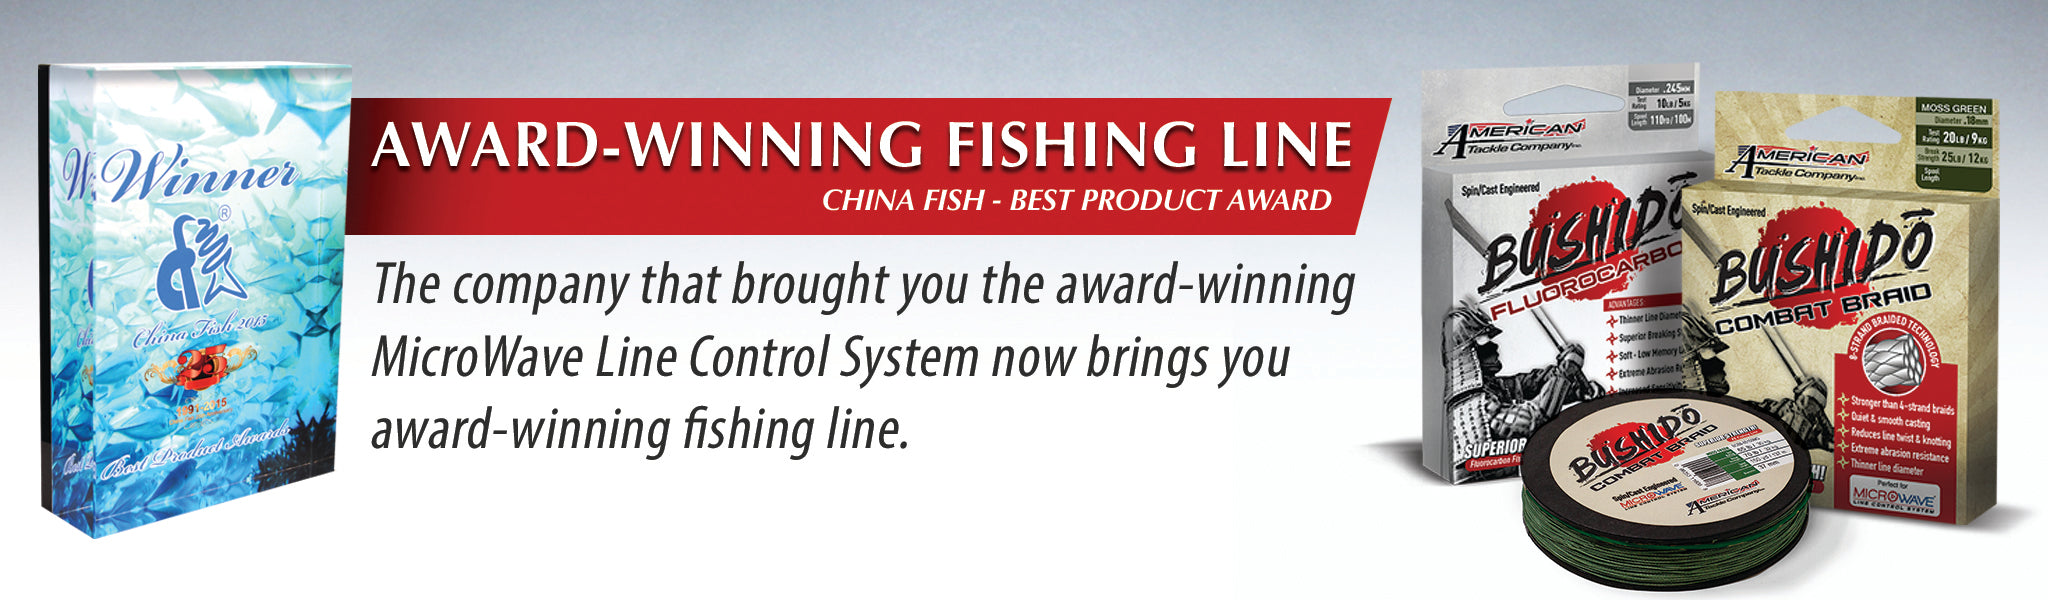 Award Winning Bushido Fishing Line by American Tackle Company